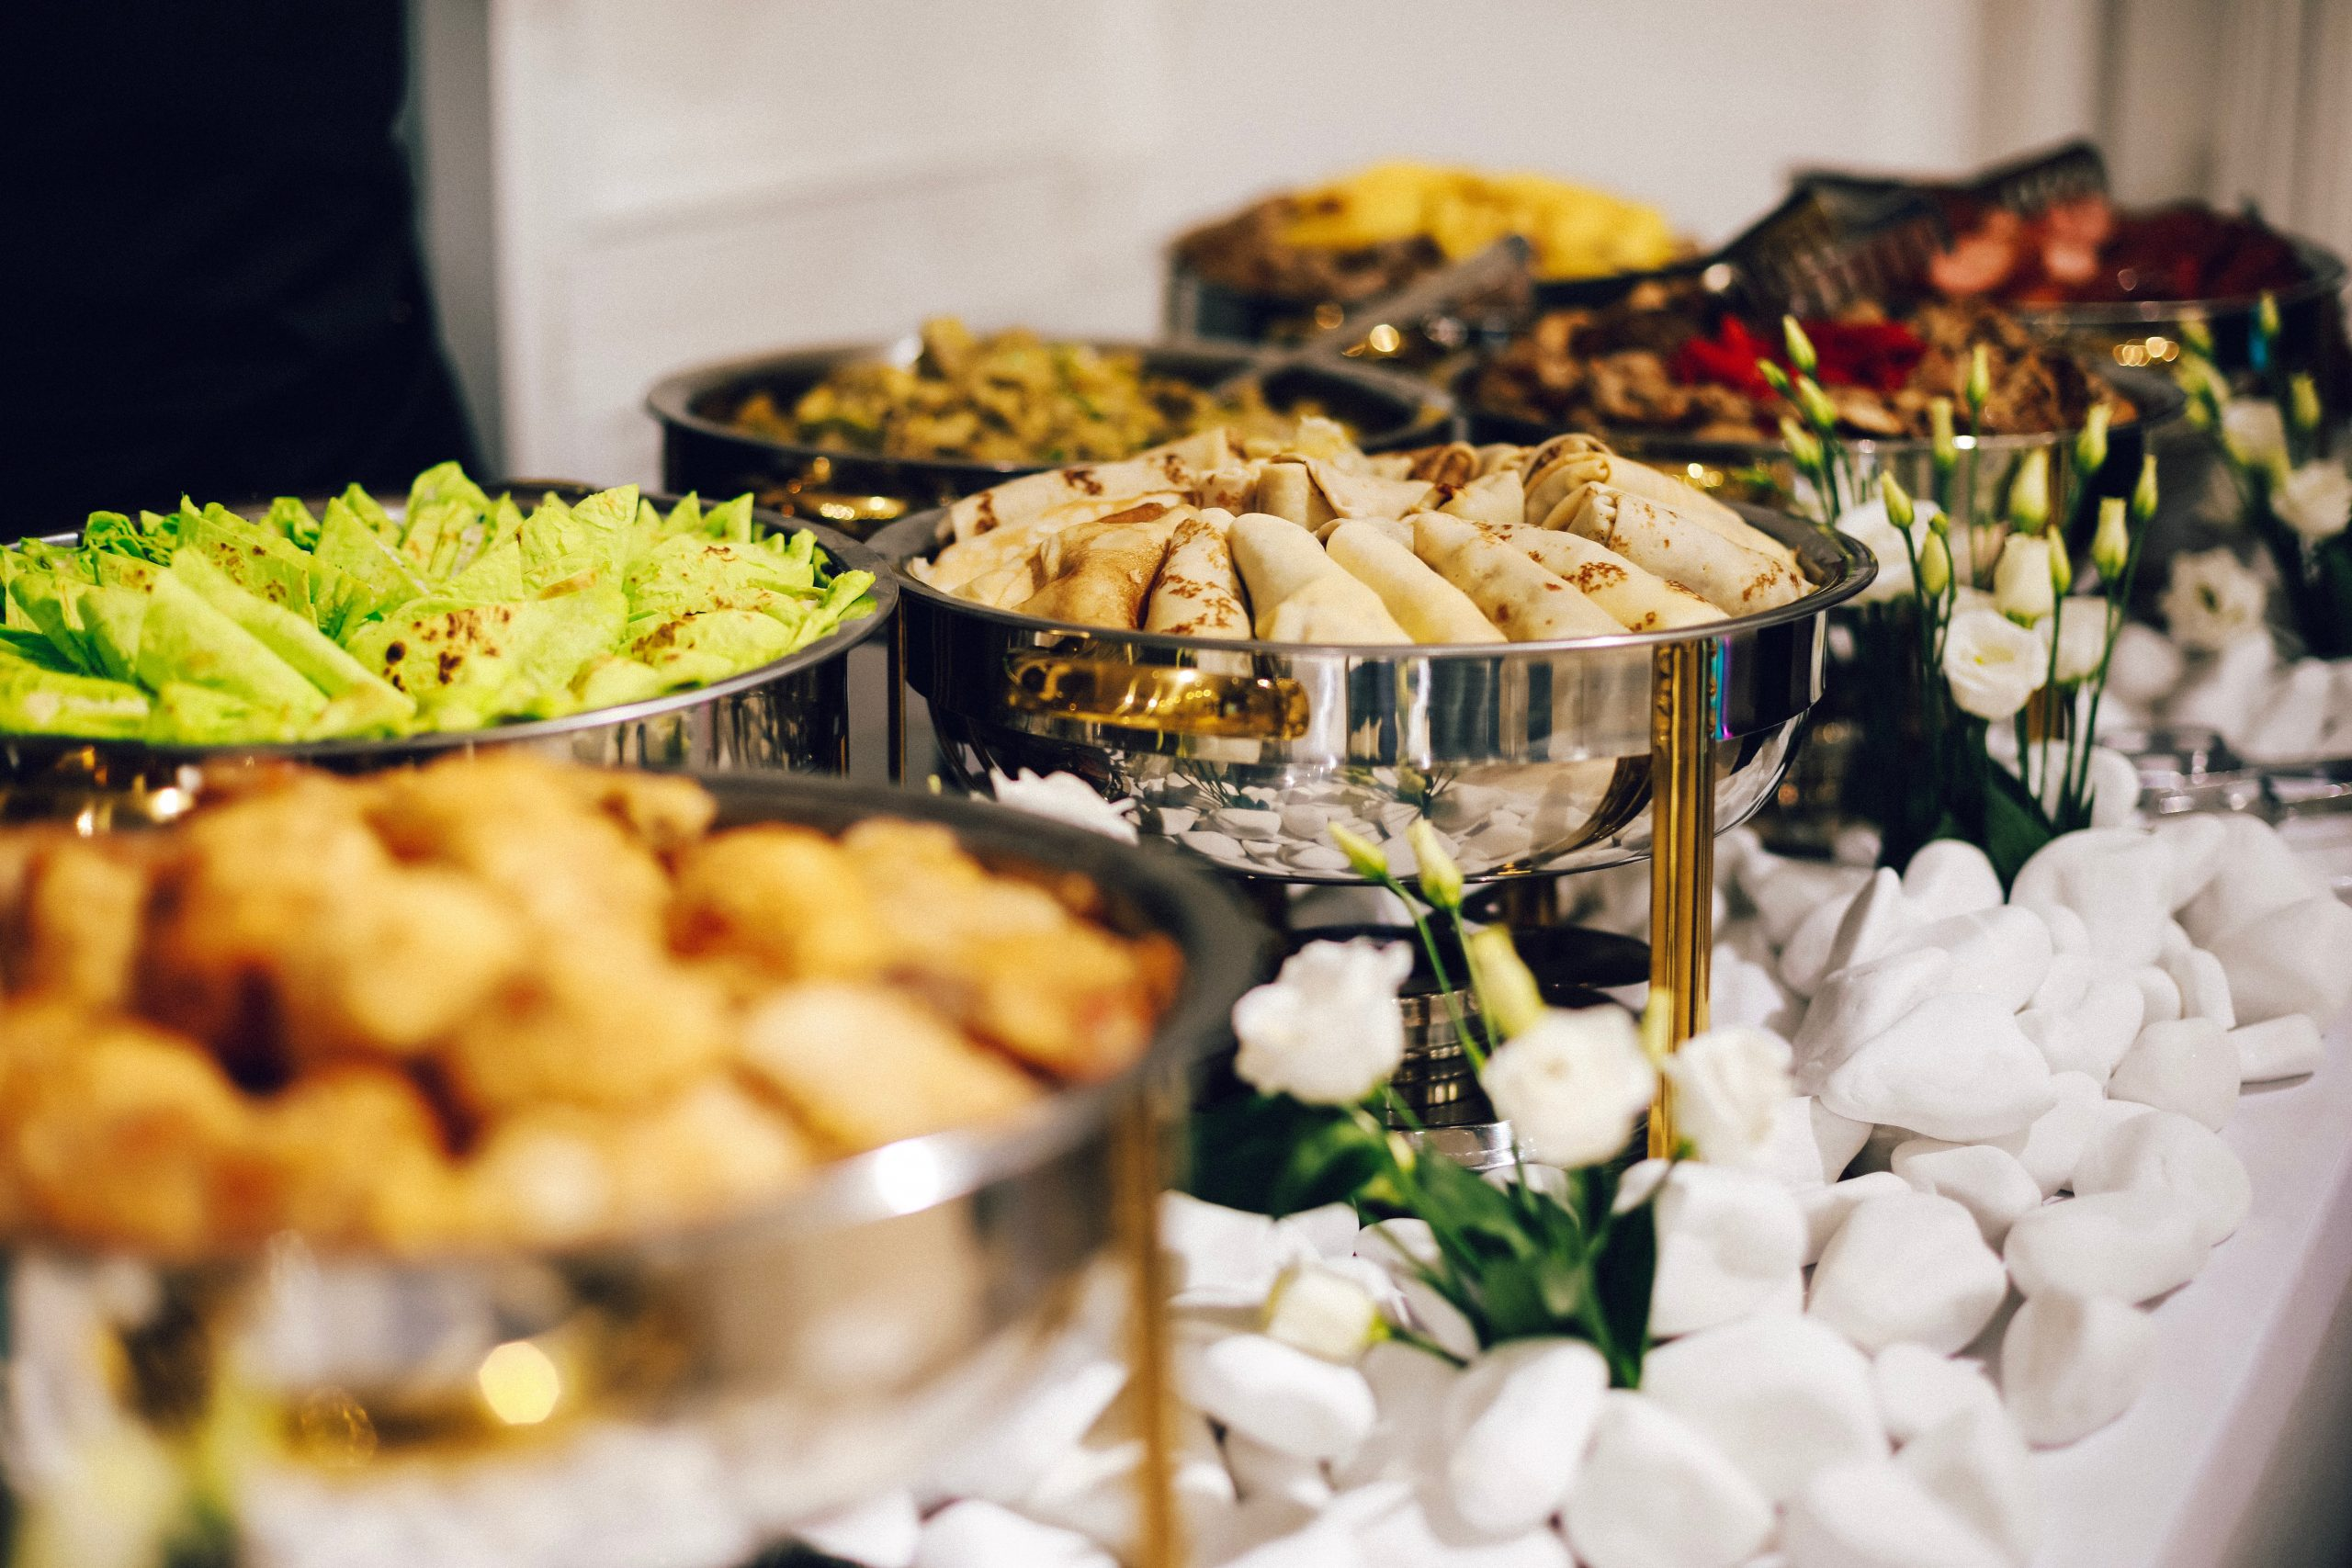 Professional Melbourne catering services